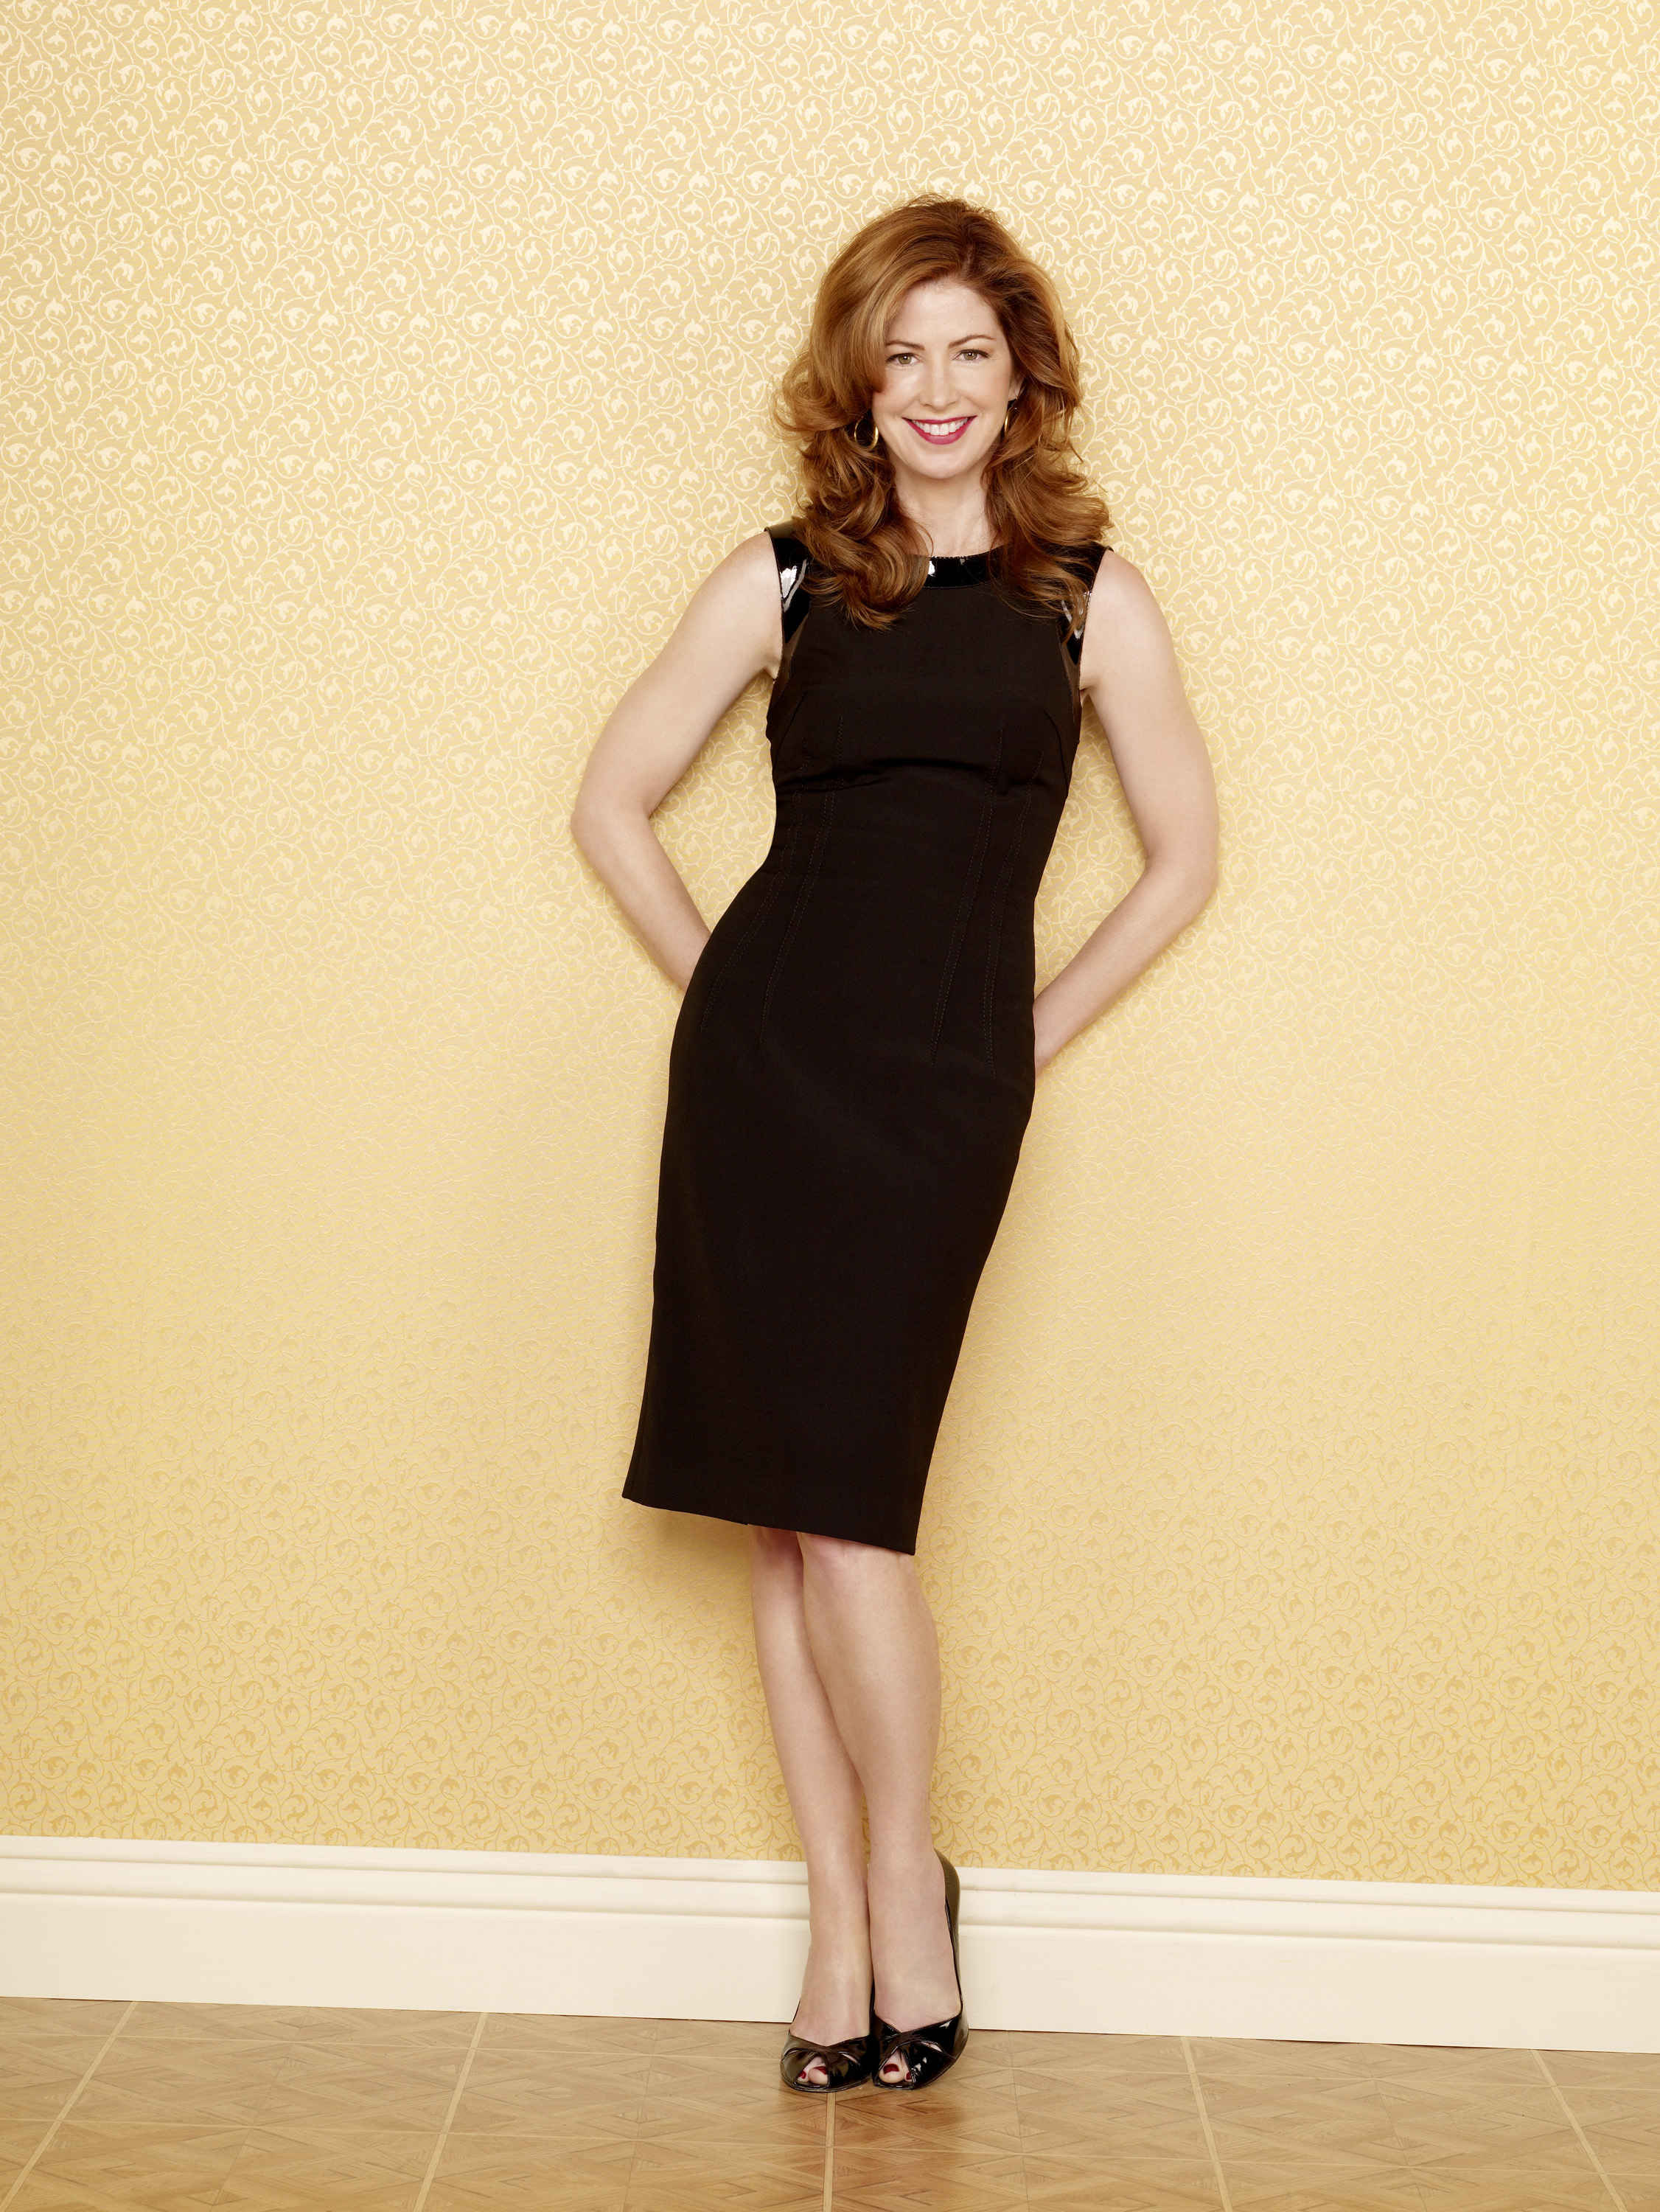 dana delany religiondana delany 2016, dana delany 2017, dana delany vk, dana delany desperate housewives, dana delany china beach, dana delany films, dana delany sister, dana delany desperate, dana delany photos, dana delany фото, dana delany pasadena, dana delany and jennifer beals, dana delany religion, dana delany nathan fillion, dana delany emmy, dana delany looks, dana delany music, dana delany new series, dana delany instagram, dana delany body of proof